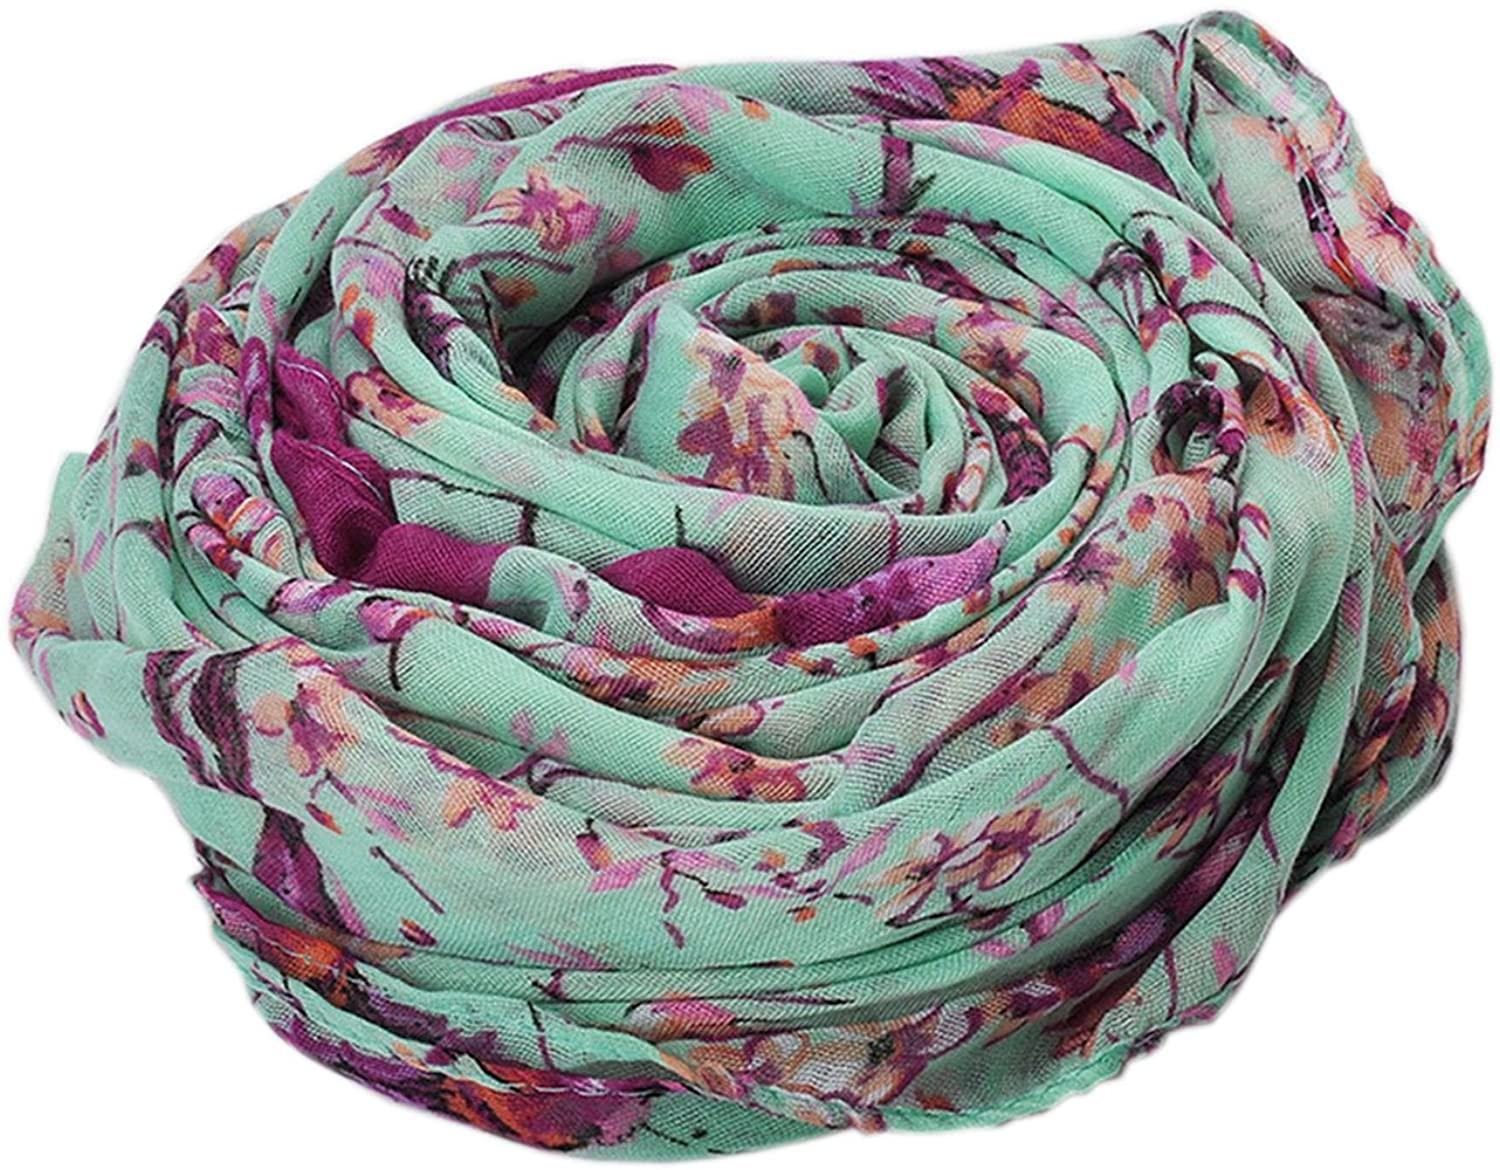 Bettyhome Retro Magpie Branches Print Women's Scarf Shawl Lightweight 70.87 inch x 35.43 inch Diff Color